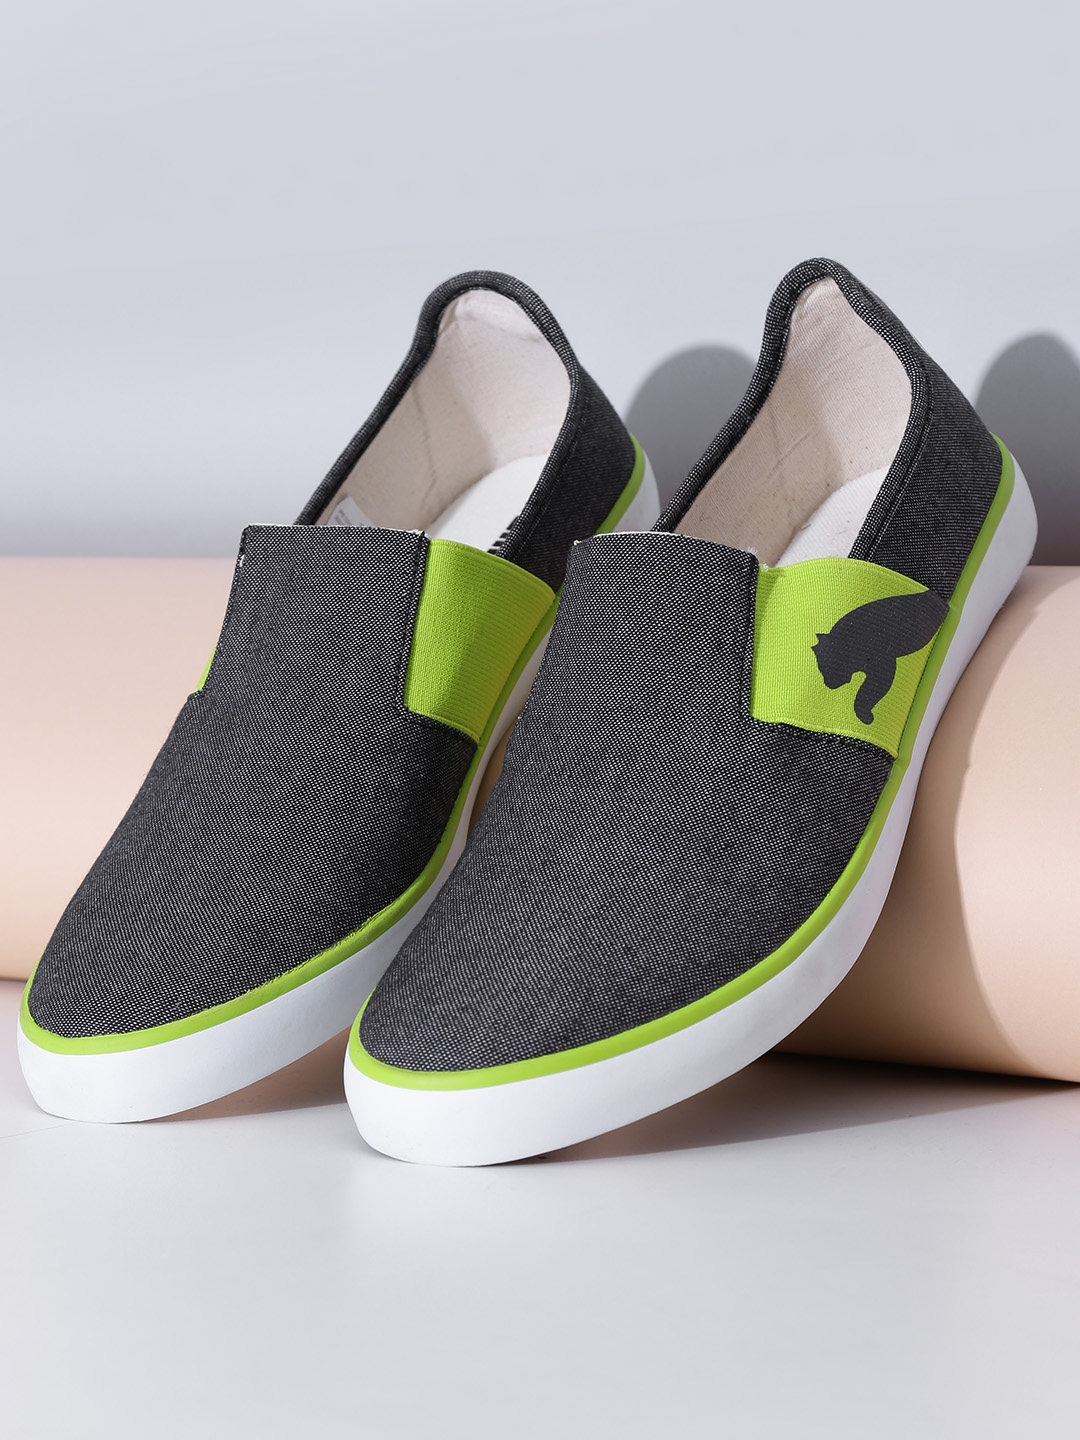 20daabc1c836 Buy PUMA Unisex Charcoal Grey Lazy Slip On II DP Slip Ons - Casual Shoes  for Unisex 961913